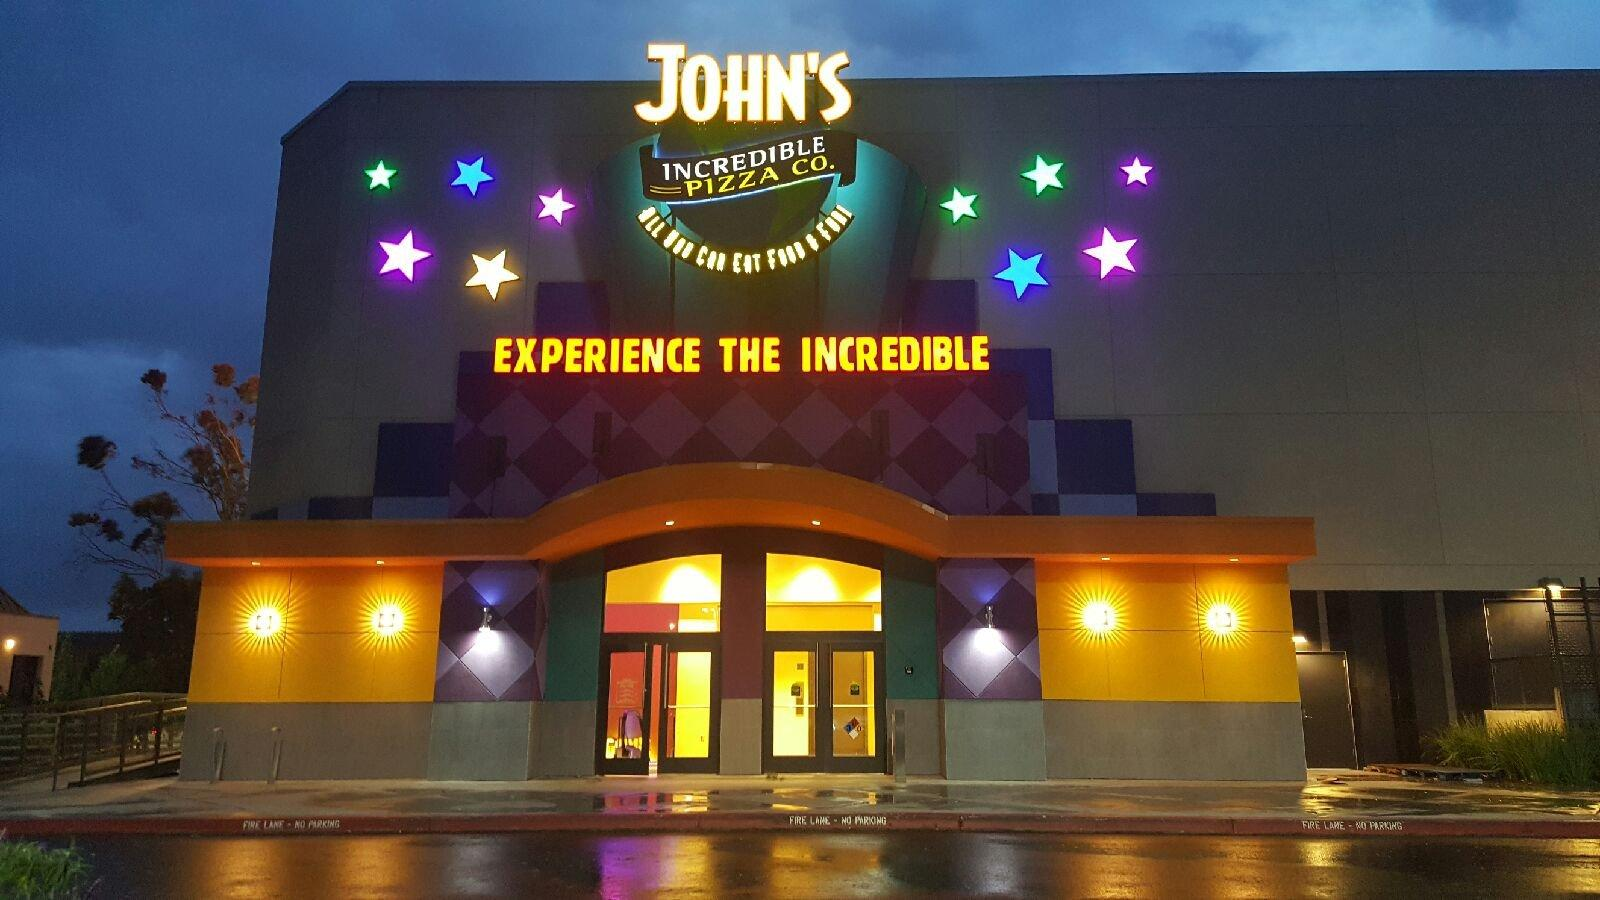 John's Incredible Pizza Company Announces Grand Opening of ...